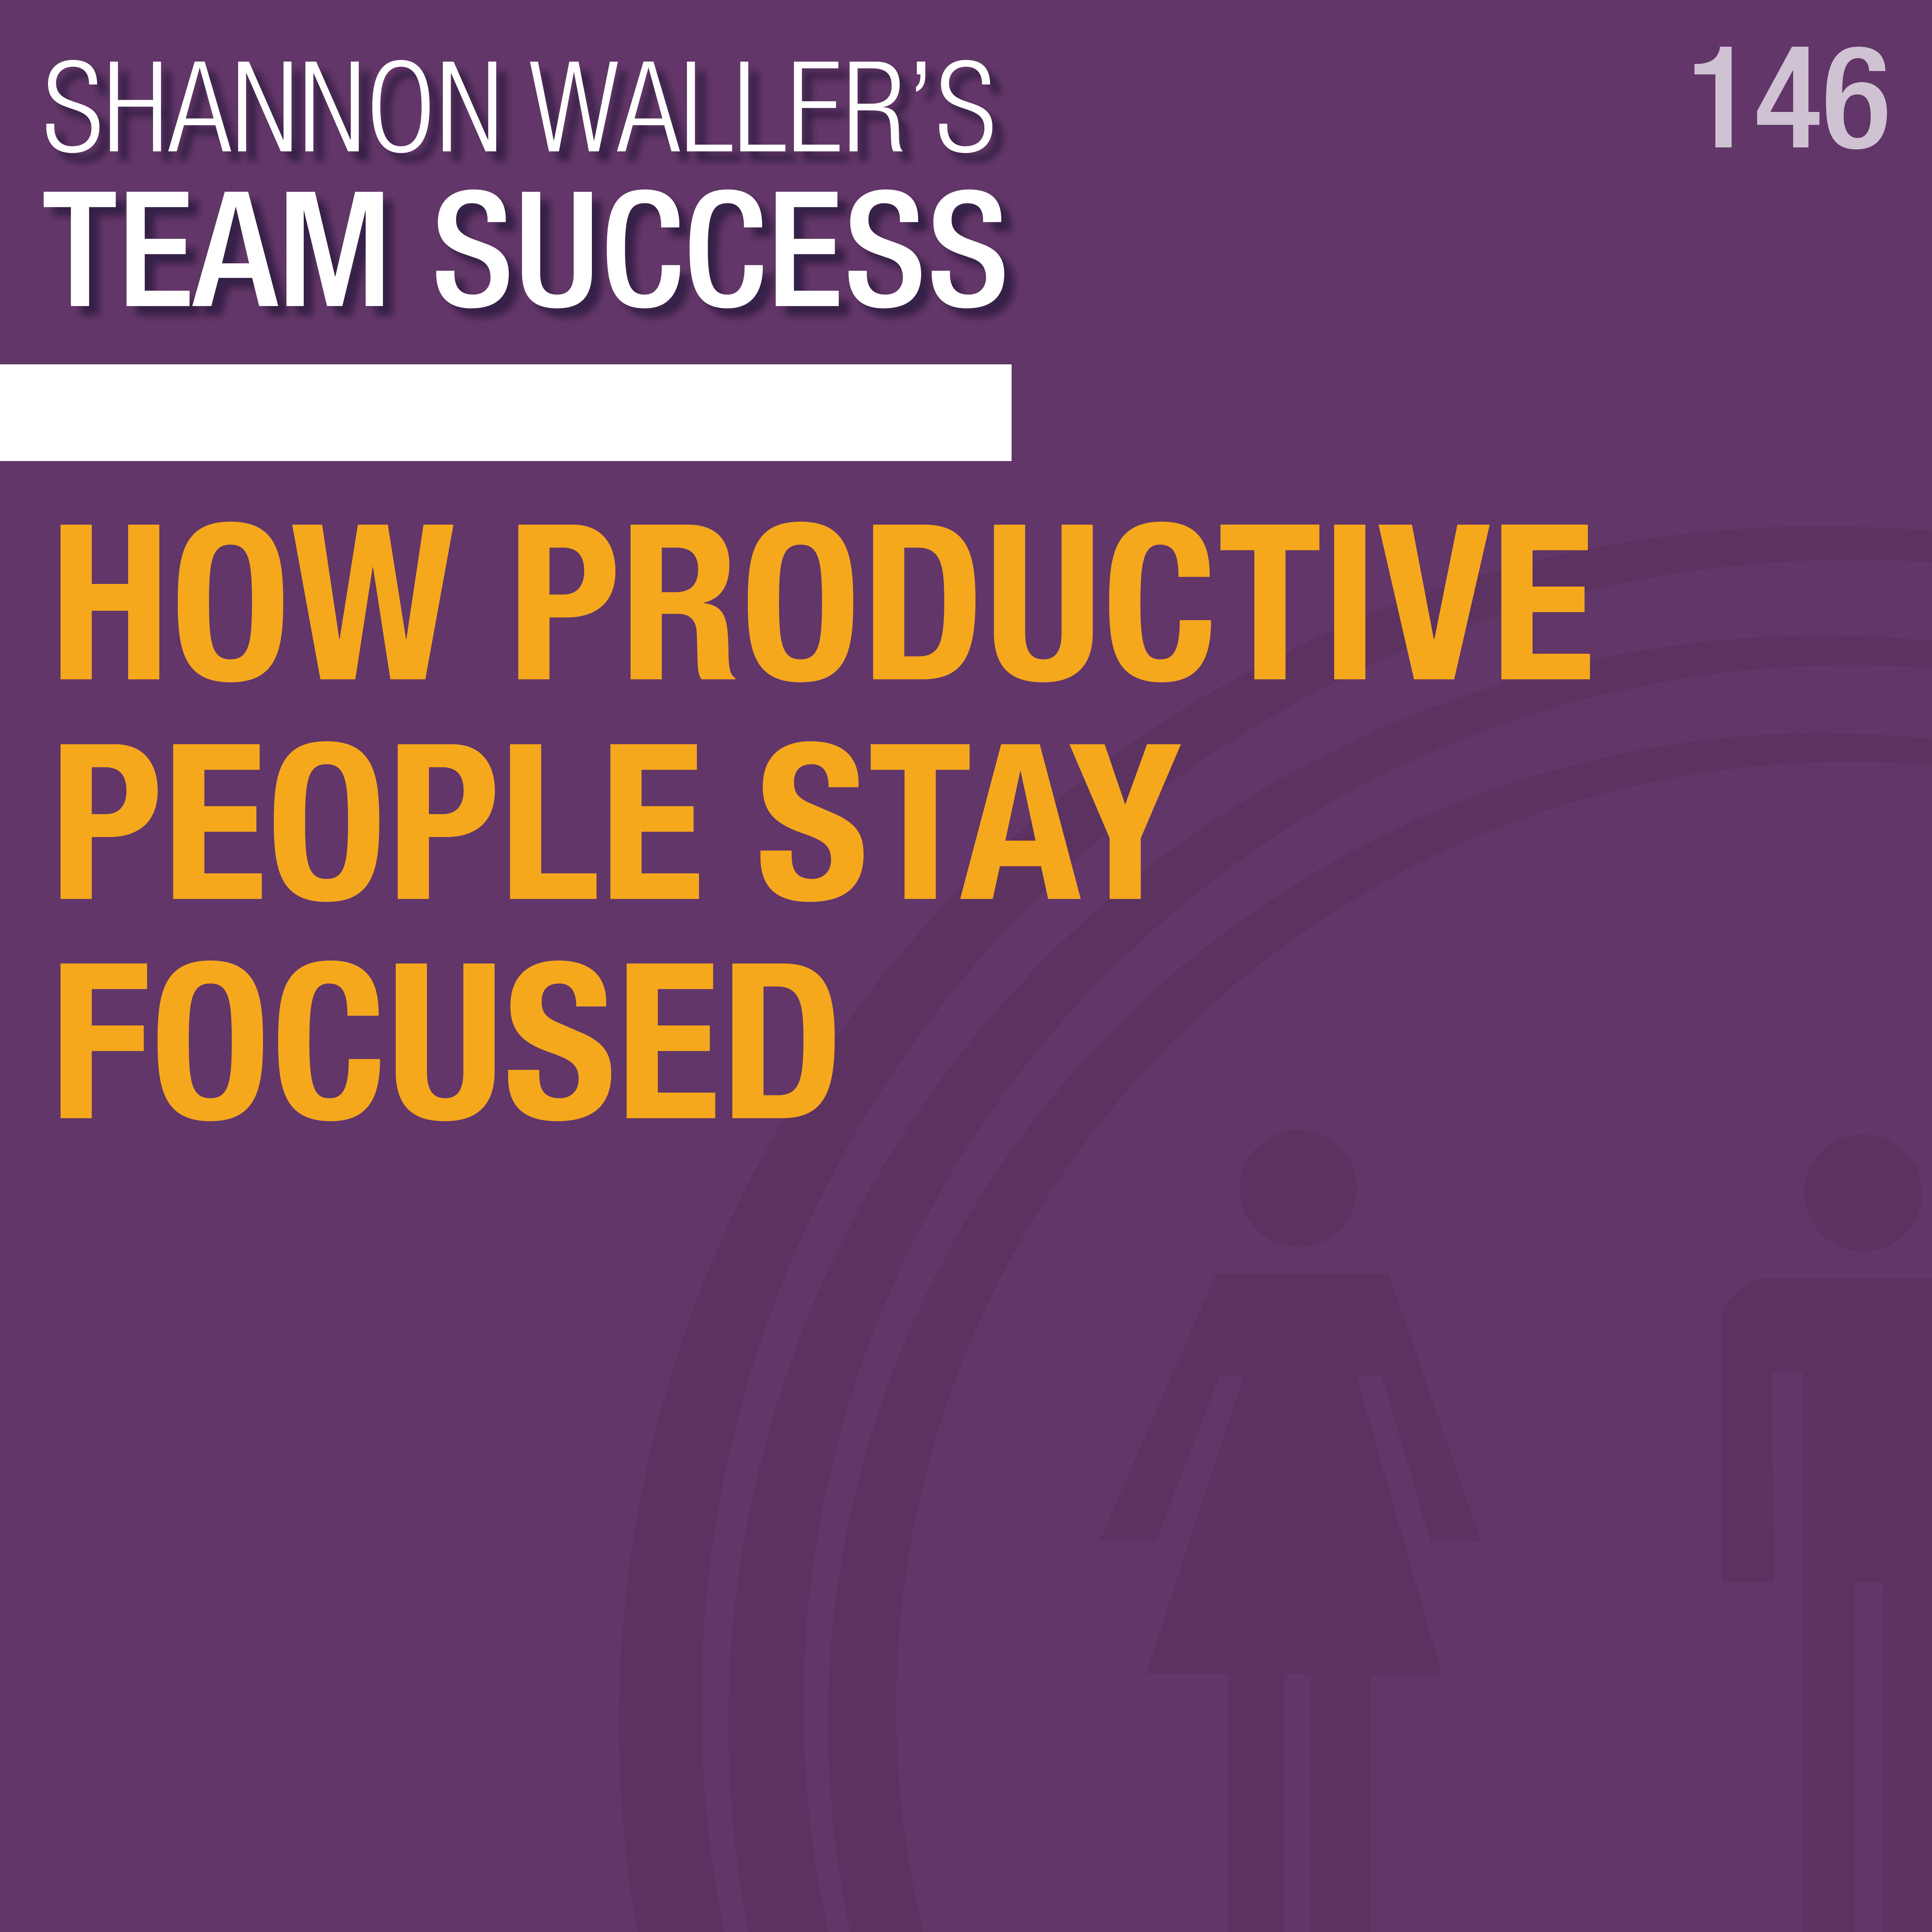 How Productive People Stay Focused